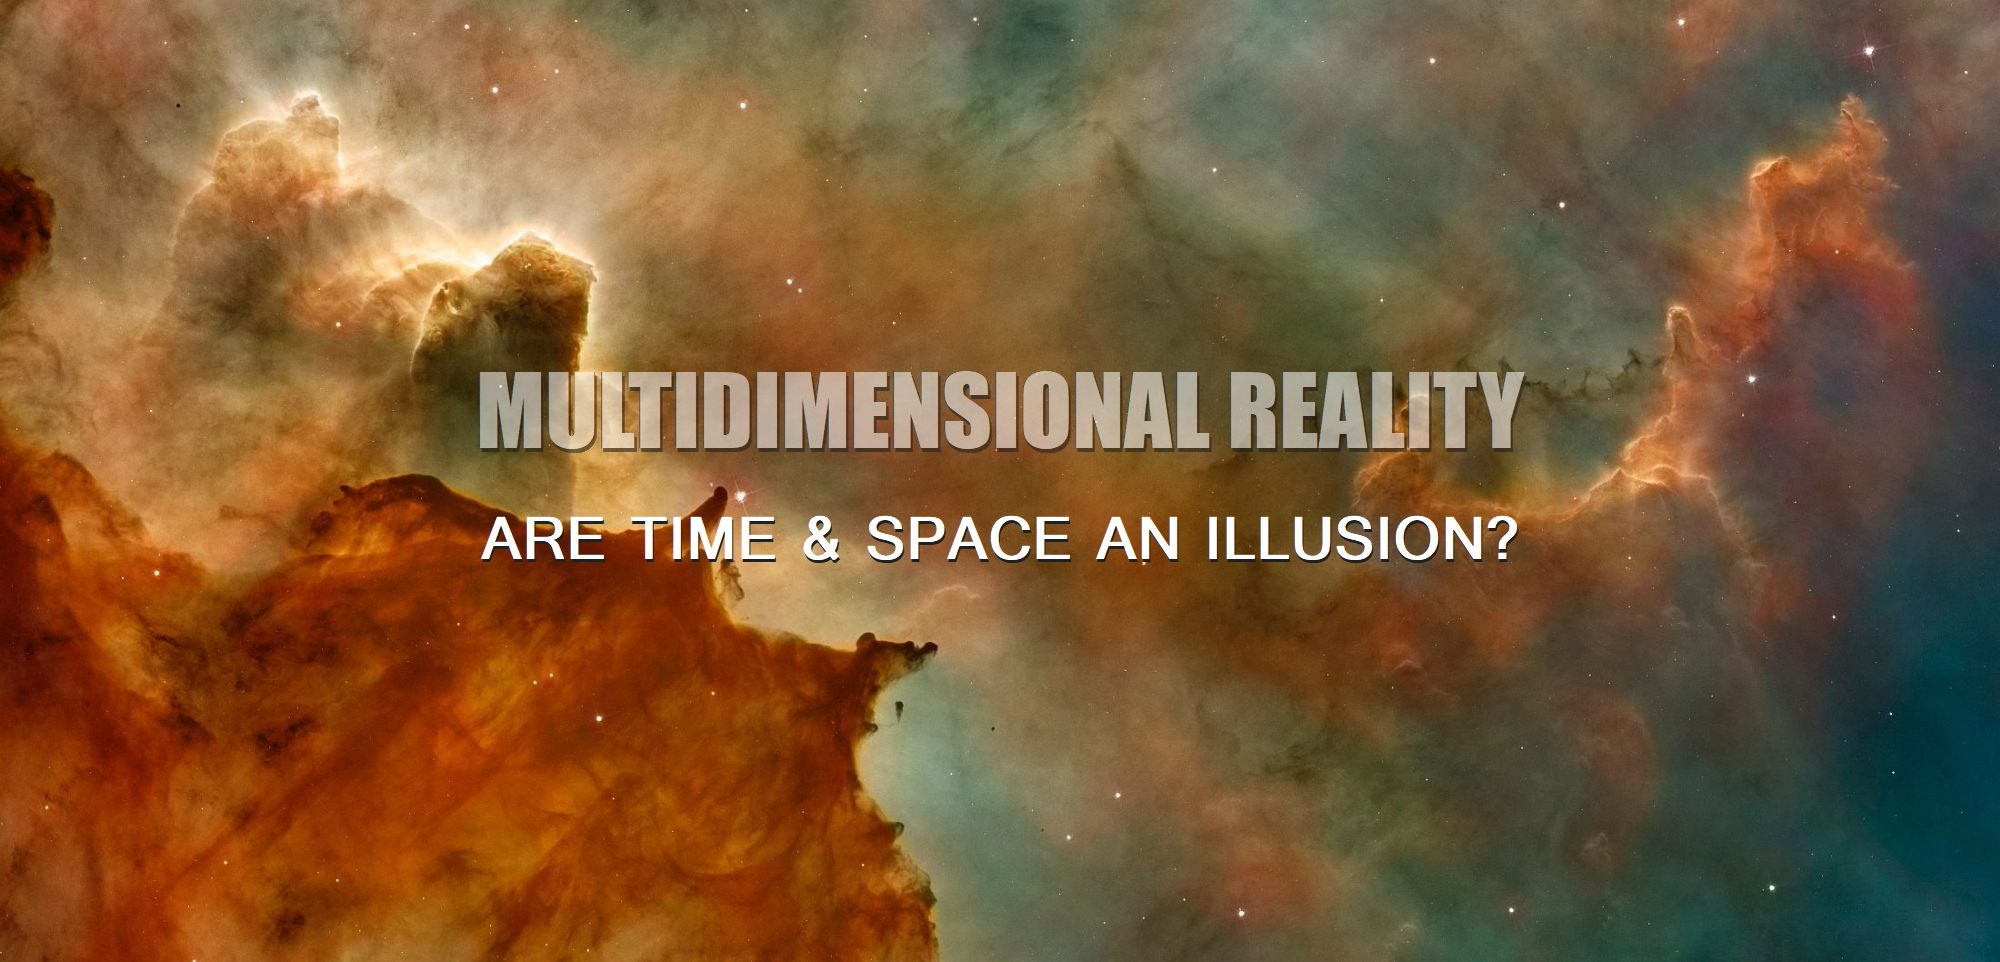 time-space-are-illusion-is-this-the-only-reality-do-other-parallel-inner-dimensions-realities-exist-2000-1